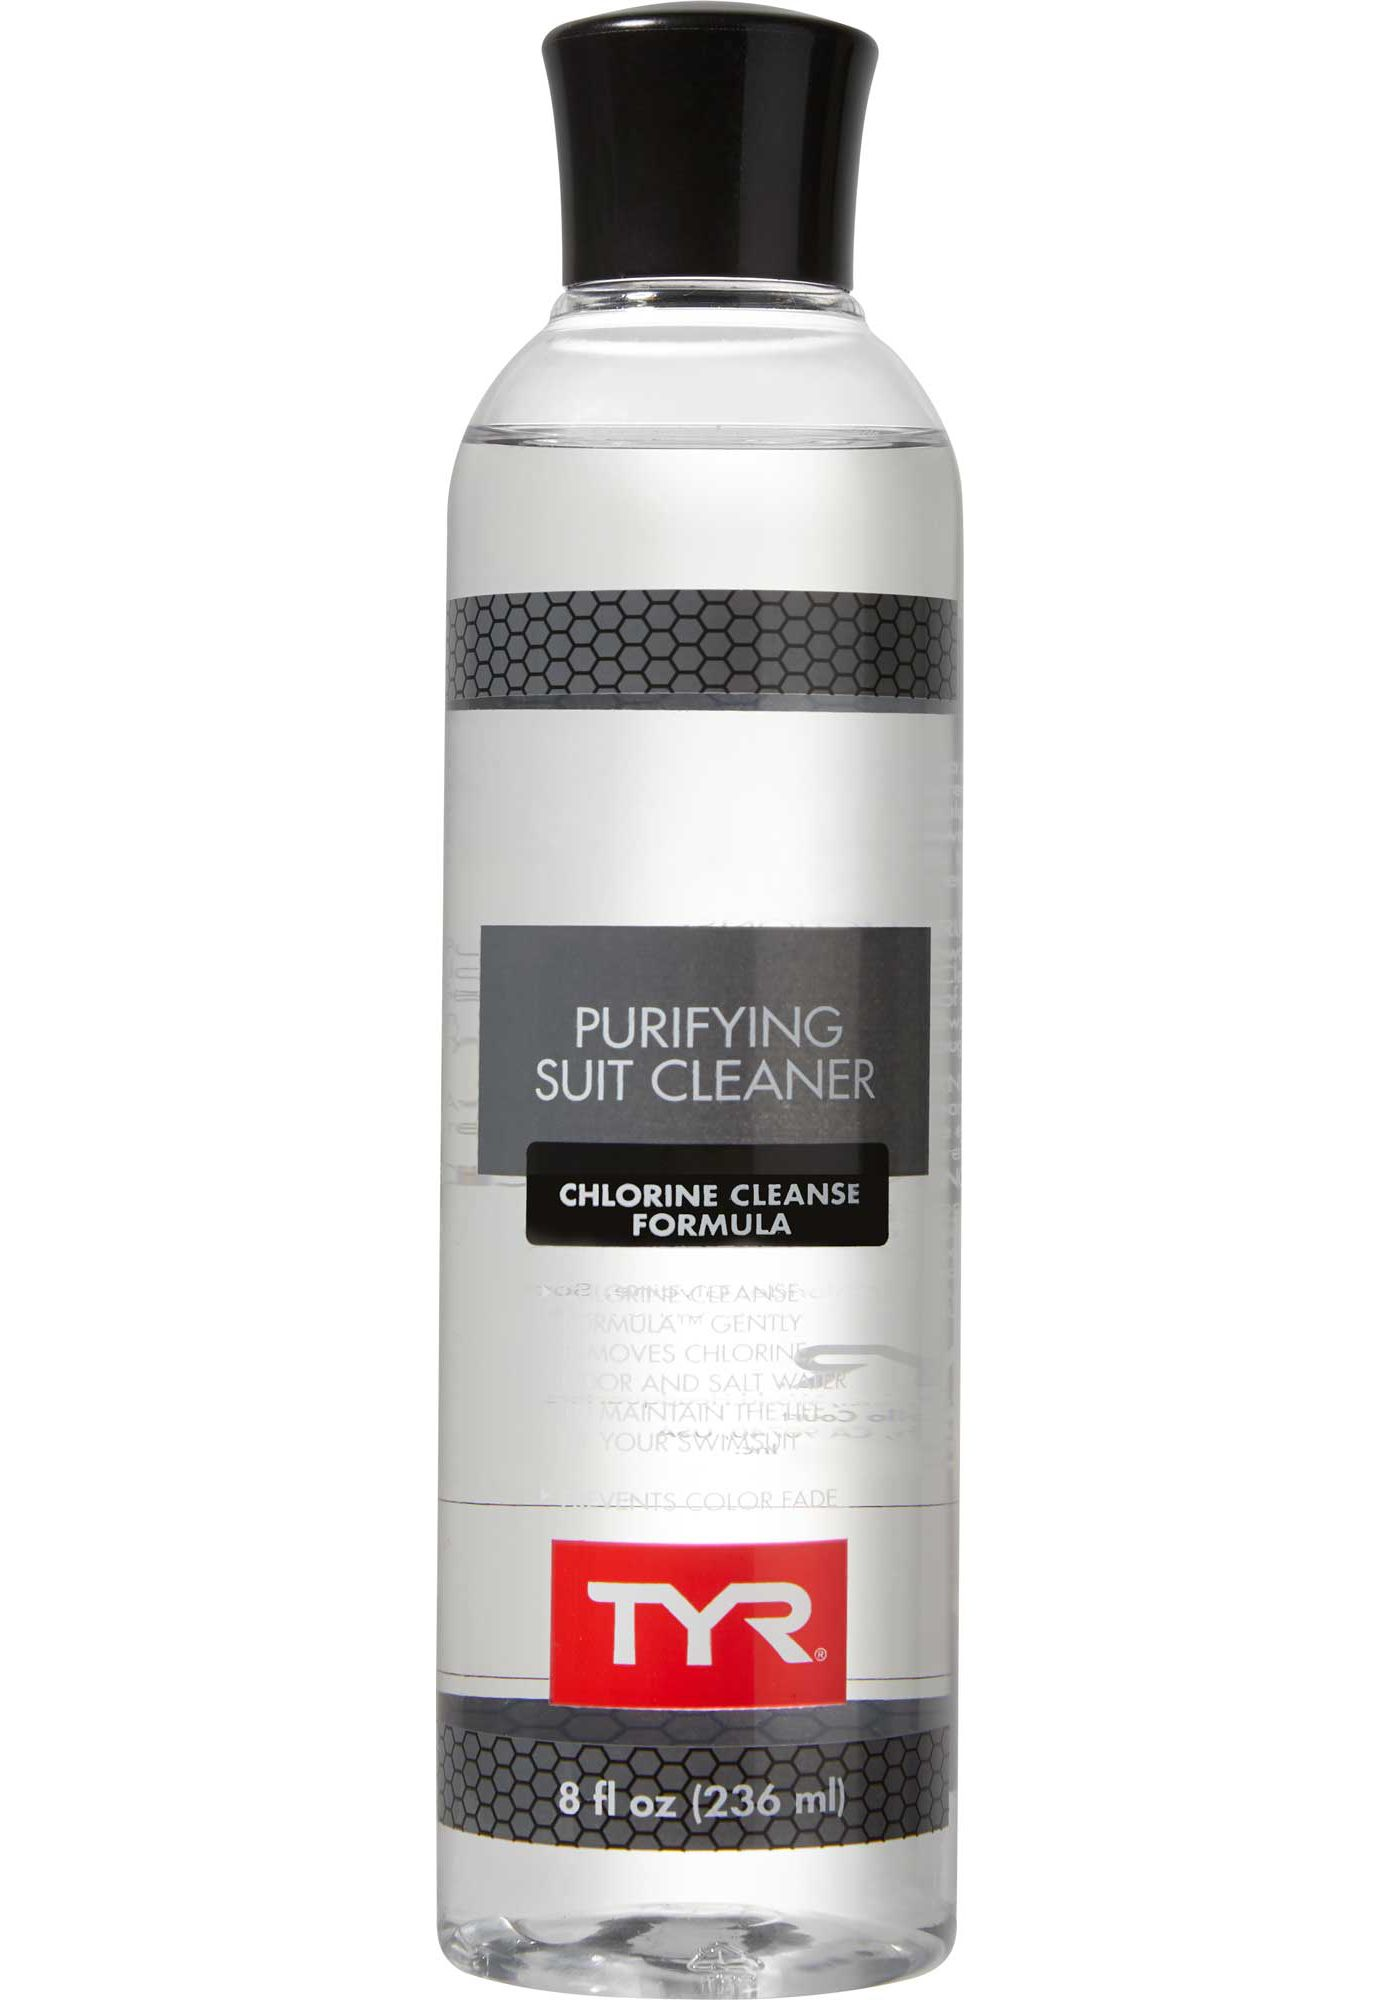 TYR Purifying Swimsuit Cleaner